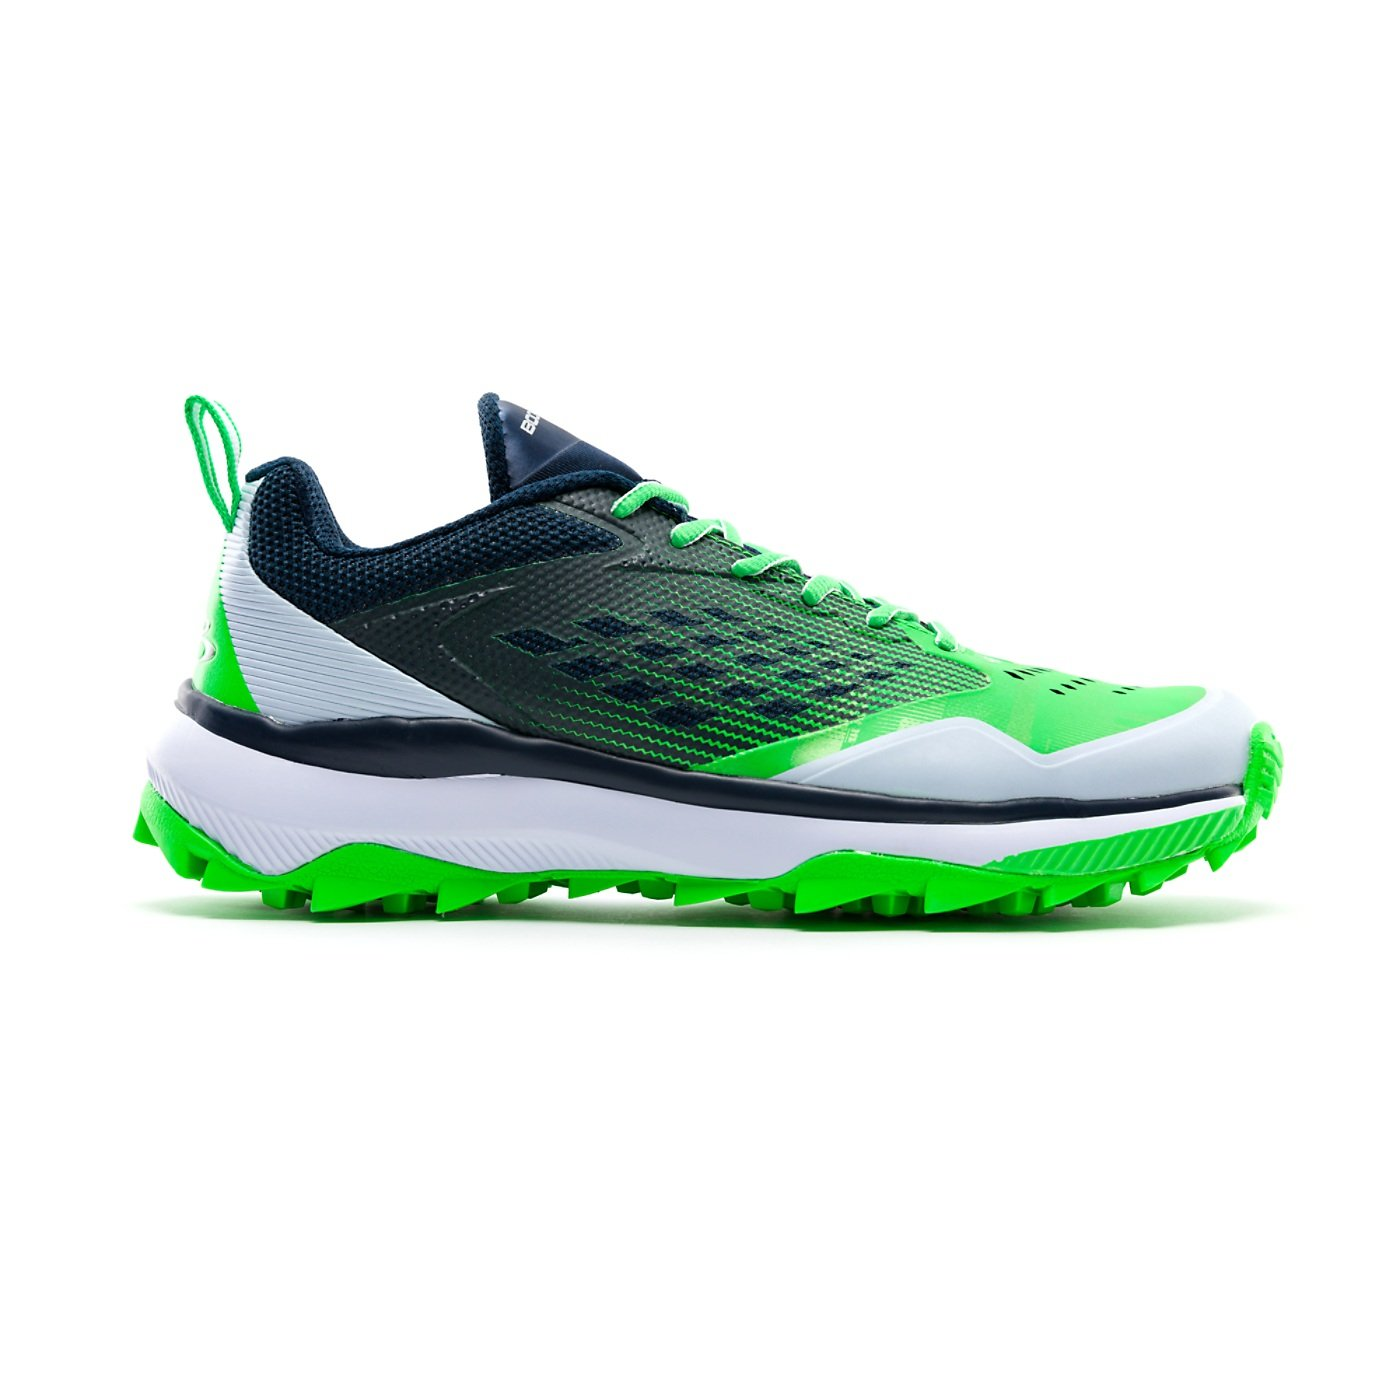 Boombah Men 's Marauder Turf Shoes – 8カラーオプション – 複数のサイズ B07BS691KY 10.5|Navy/Lime Green Navy/Lime Green 10.5